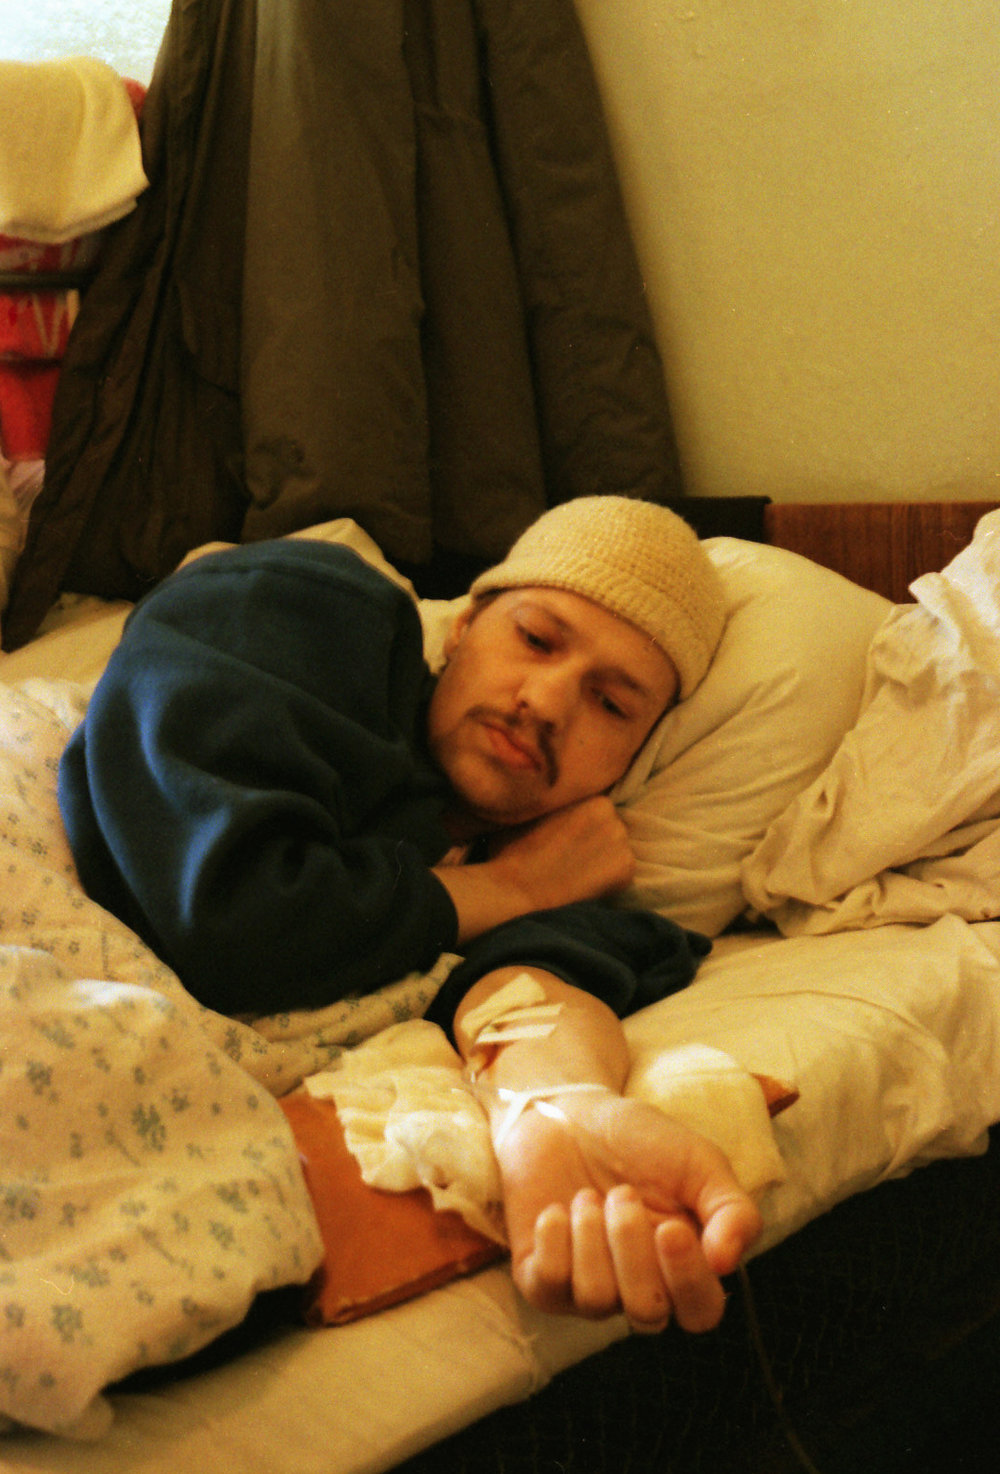 Dying-of-MDR-TB-in-a-Moscow-Sanitorium--1997--LG-(deleted-4db1c39f-97dc2c-112177d8).jpg